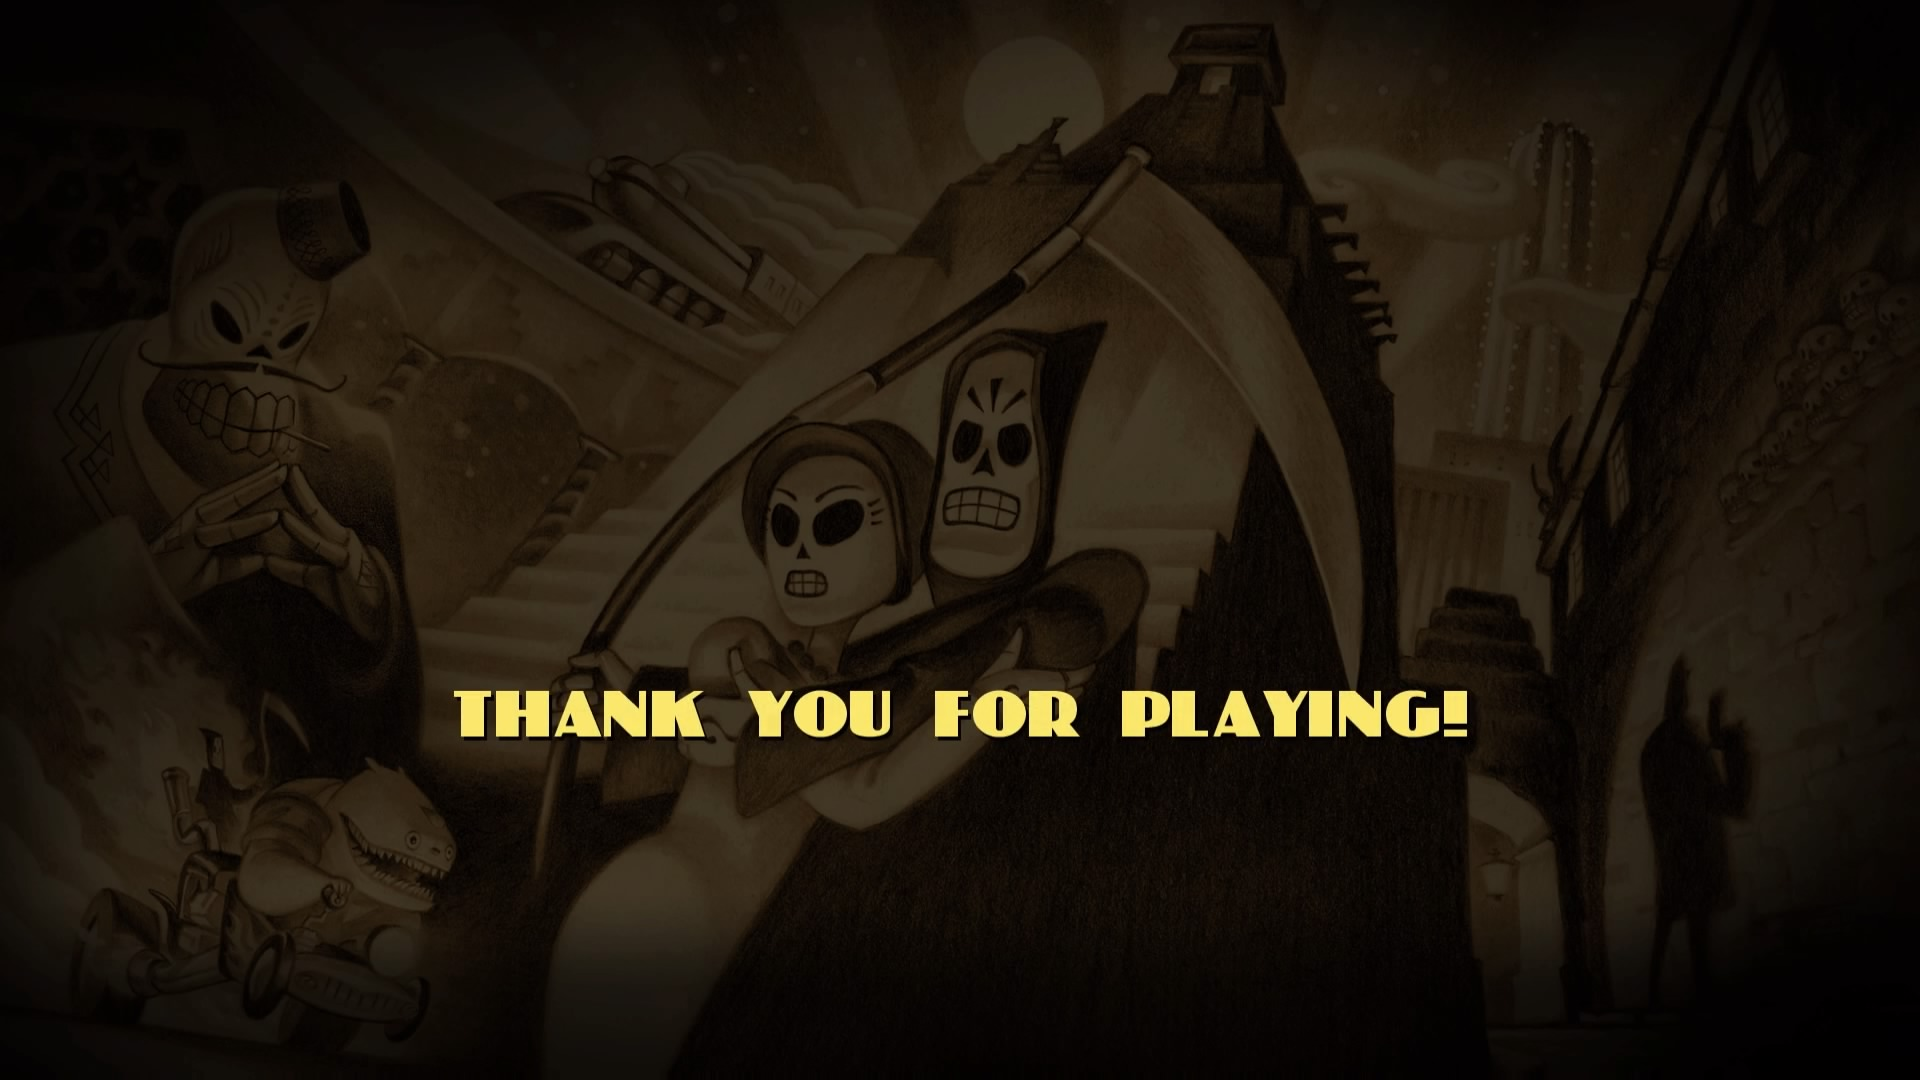 The ending screen of Grim Fandango Remastered felt well-earned after all the puzzle hardship.